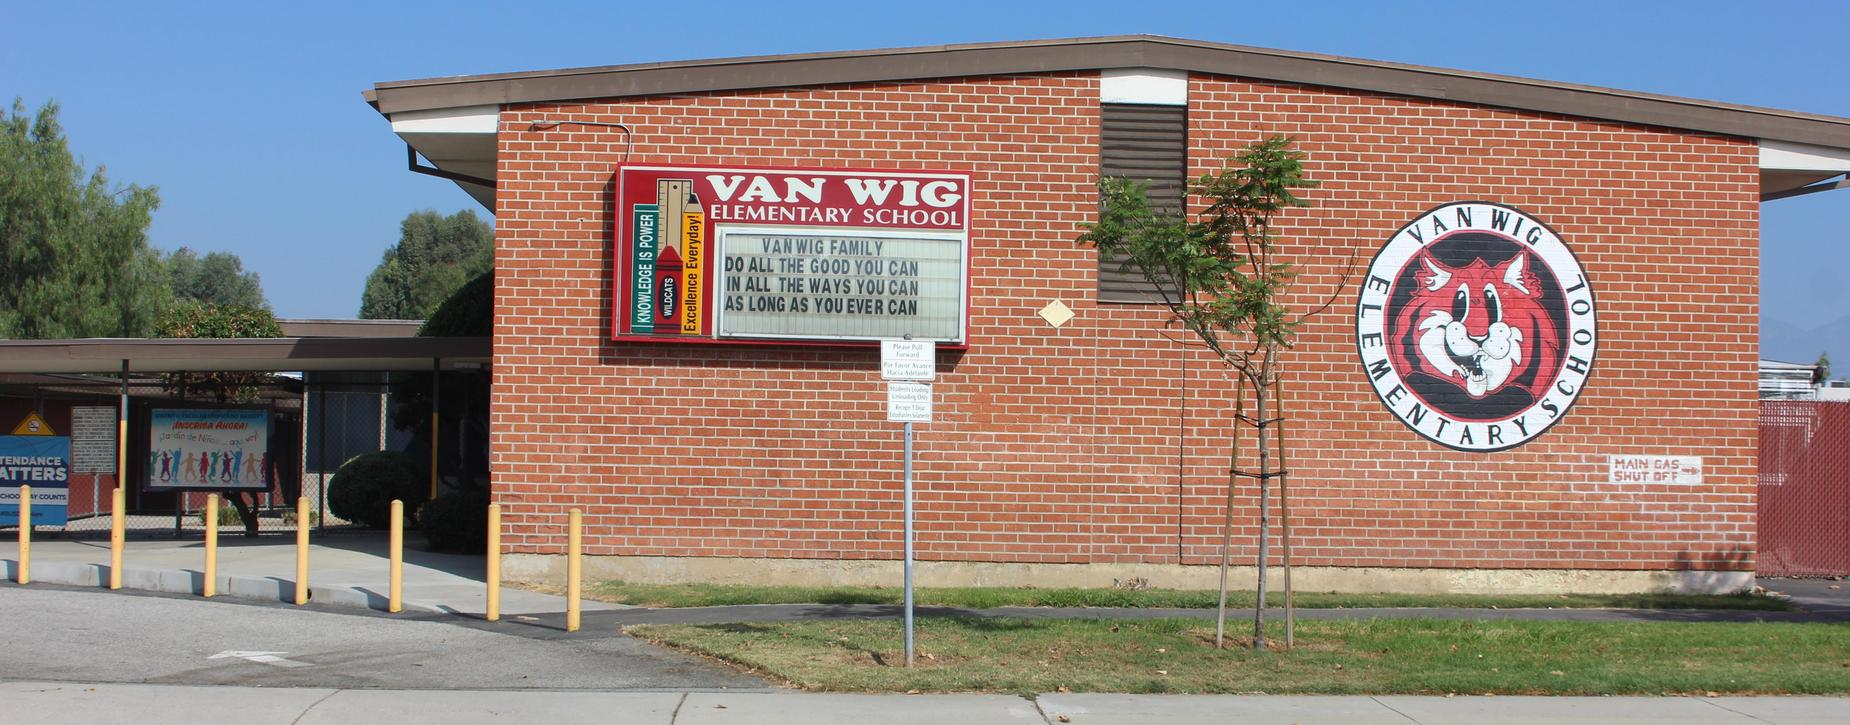 Shot of the front of Van Wig Elementary School